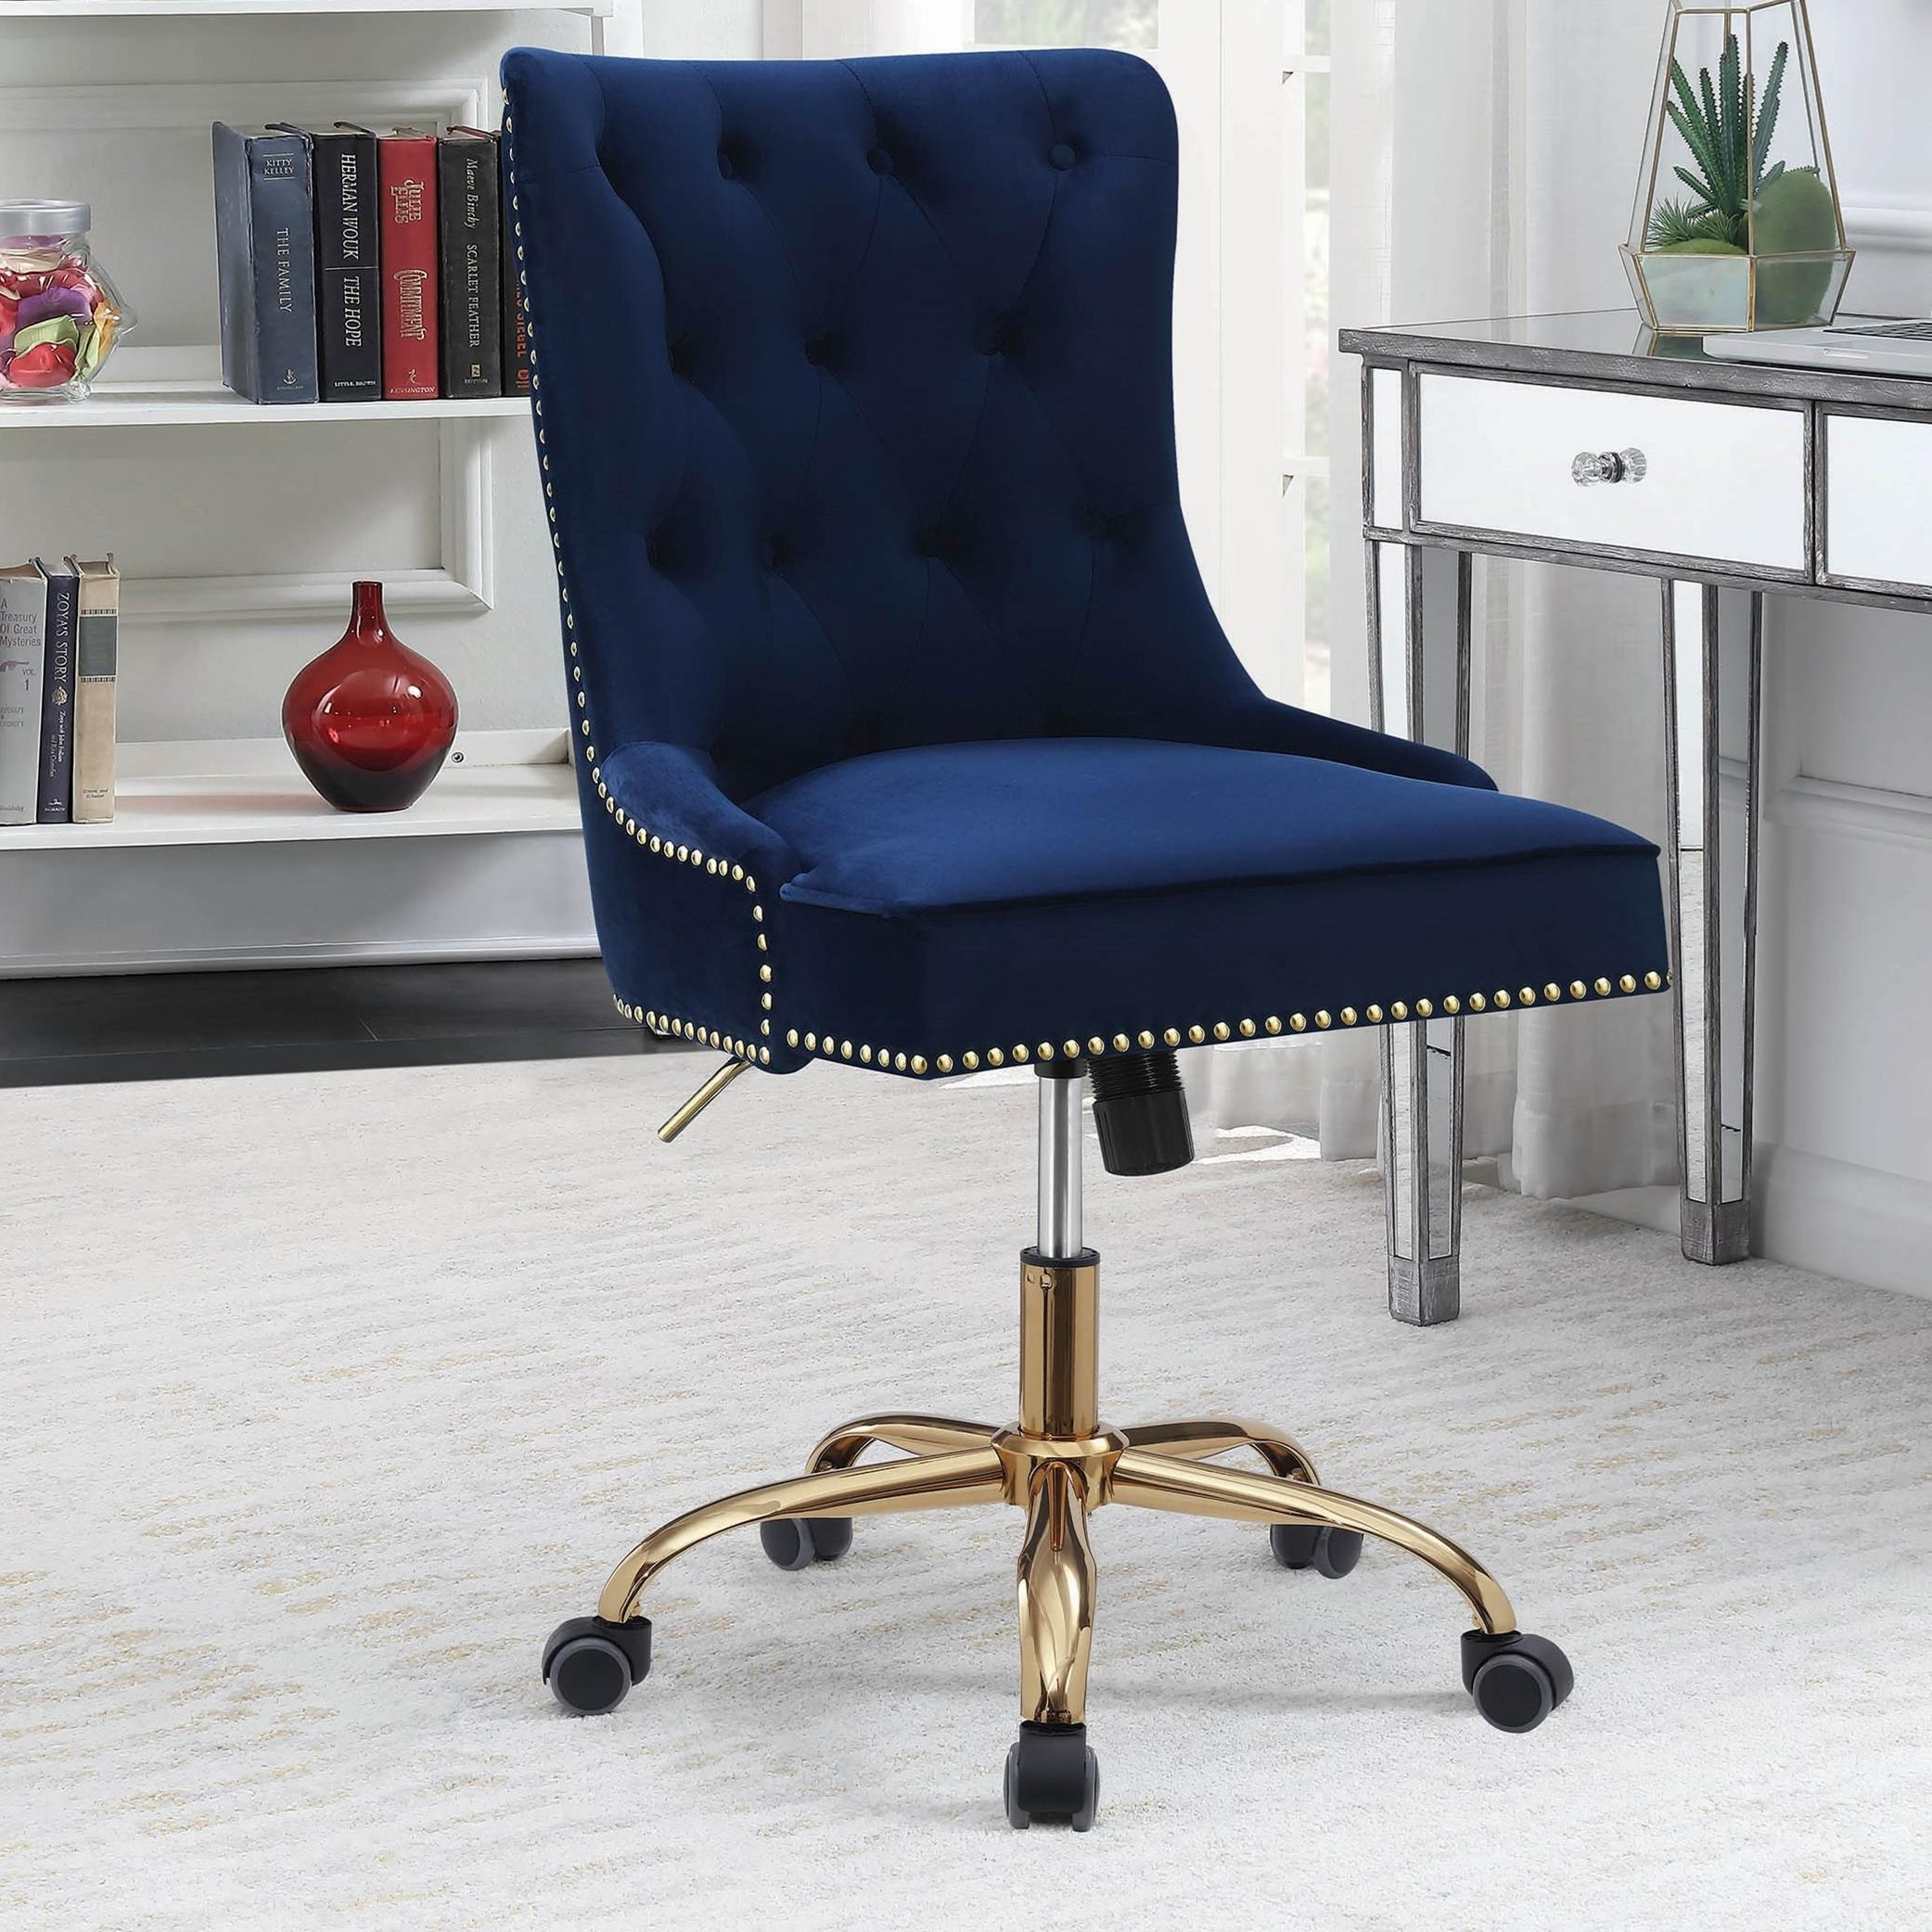 Coaster Office Chairs Office Chair with Tufted Back and